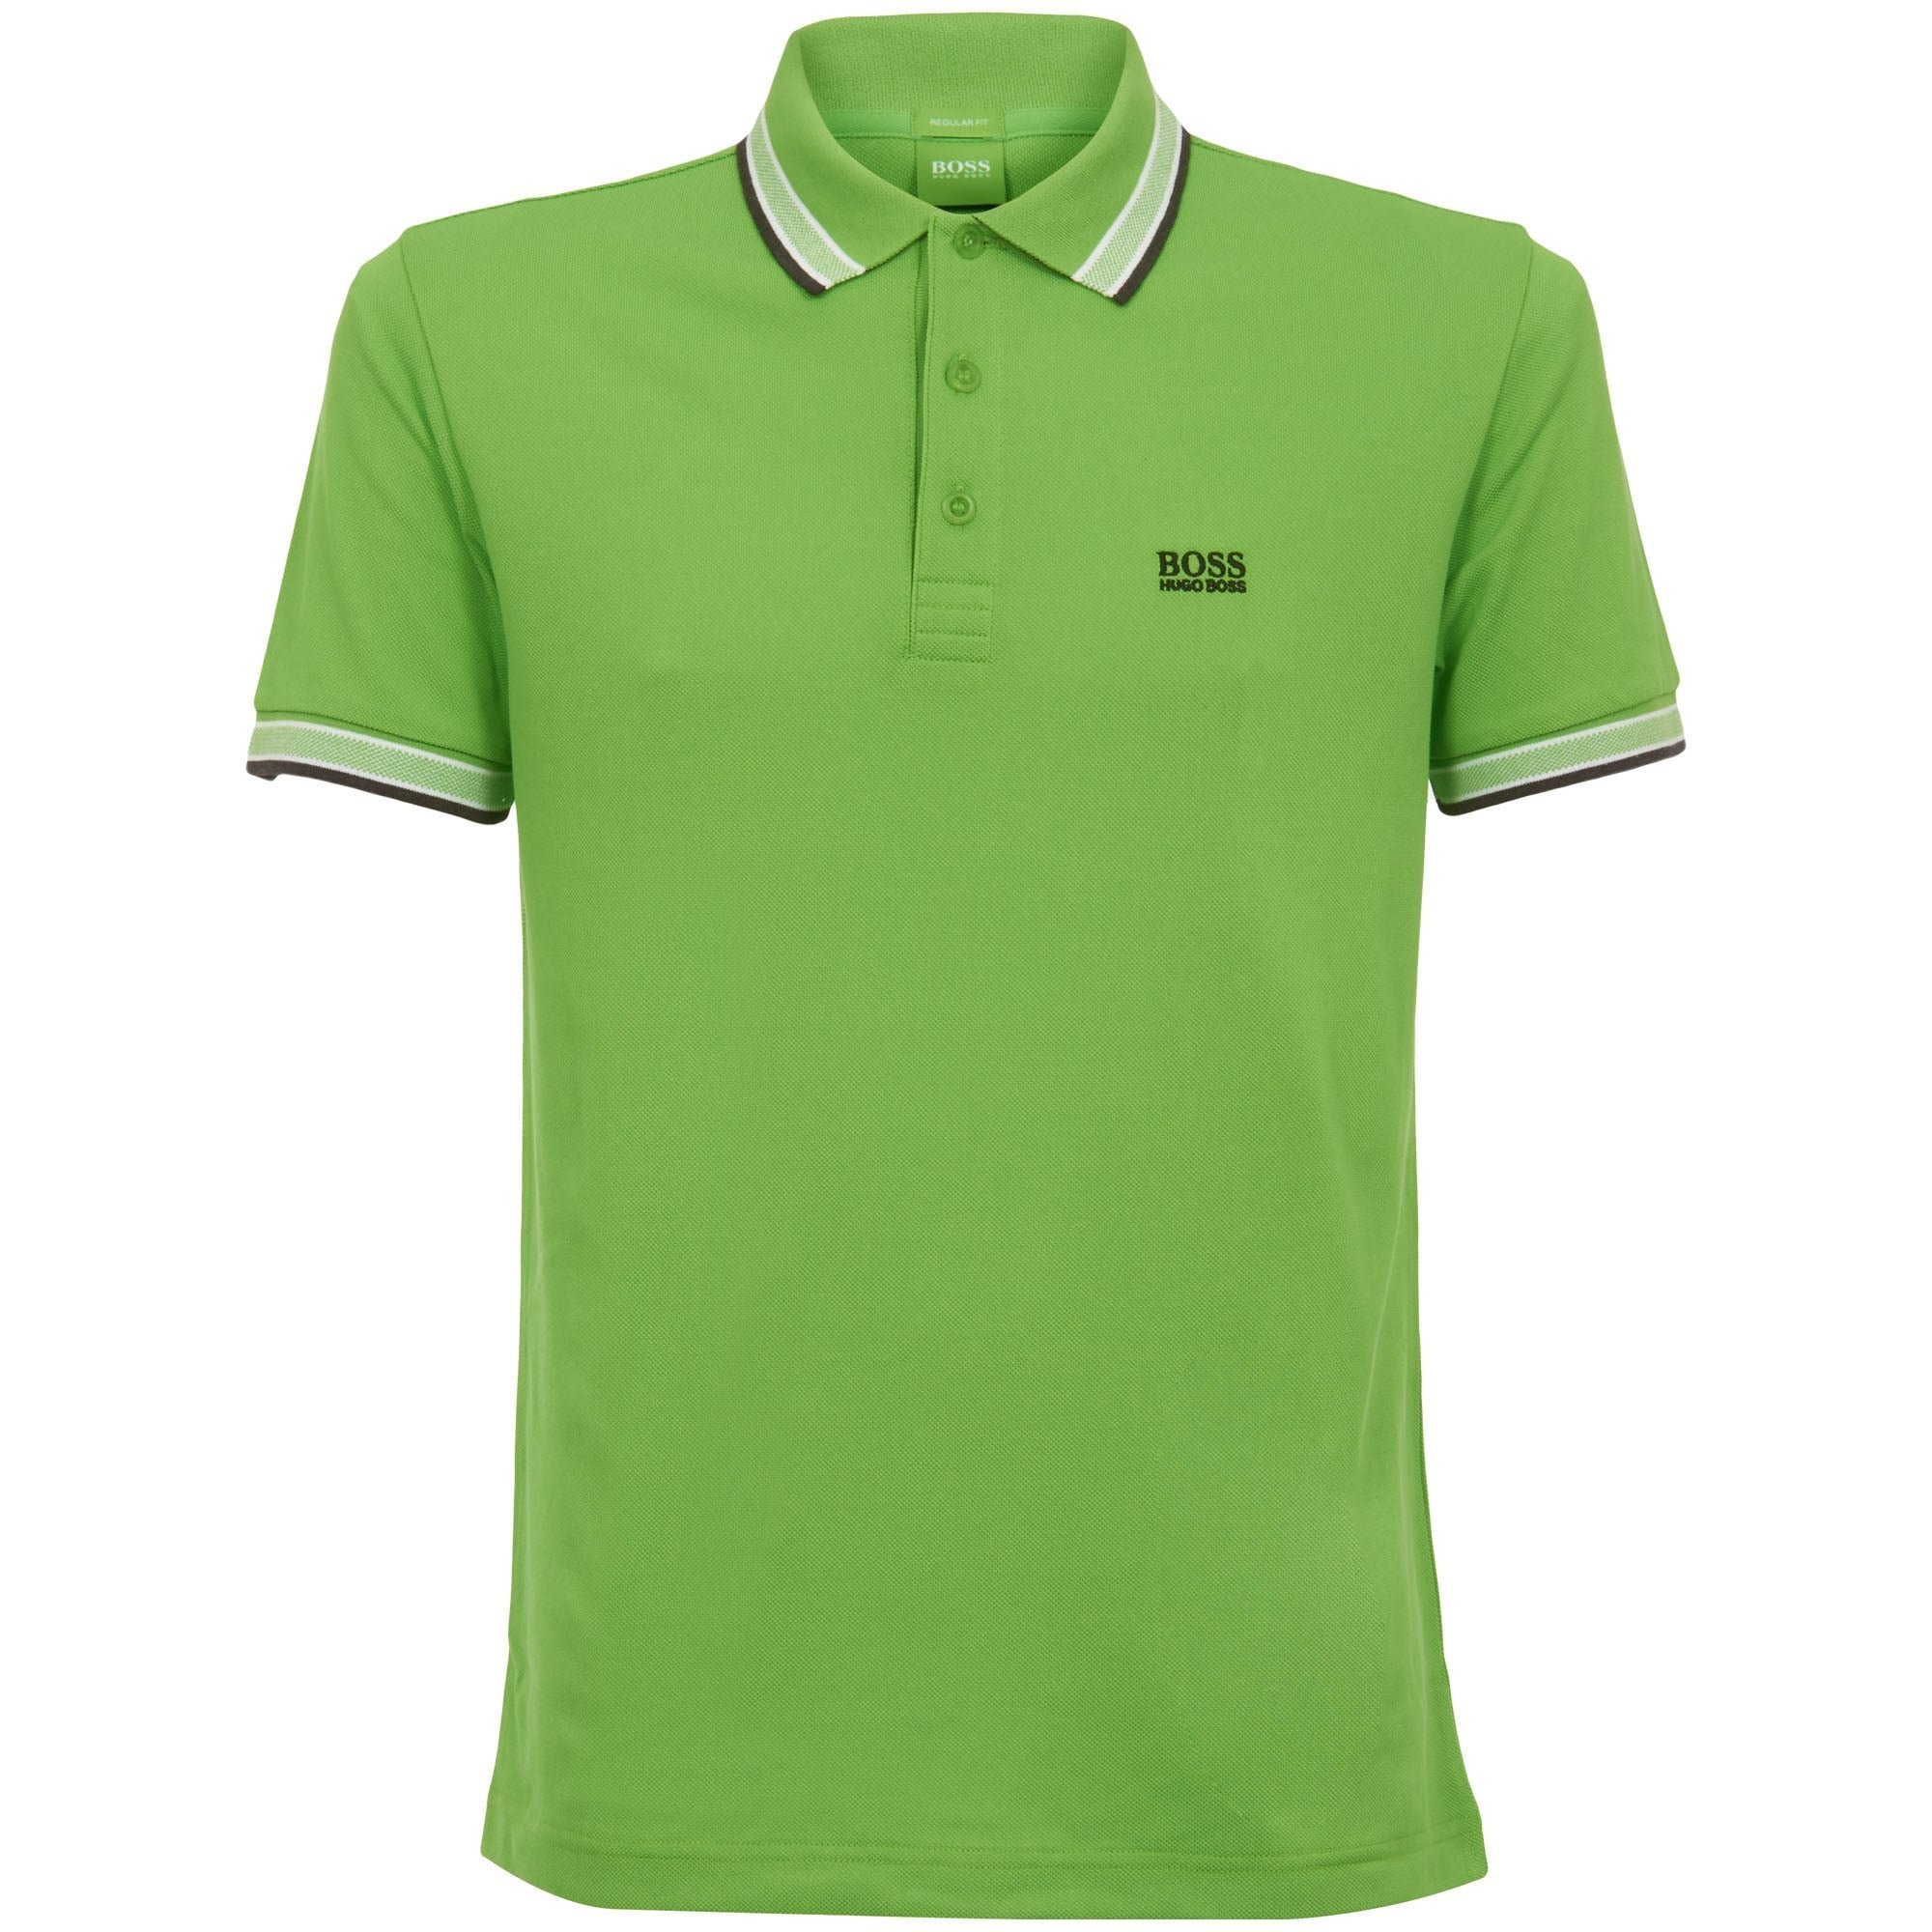 BOSS Green Men's Paddy Polo,Pastel Green, XL by Hugo Boss